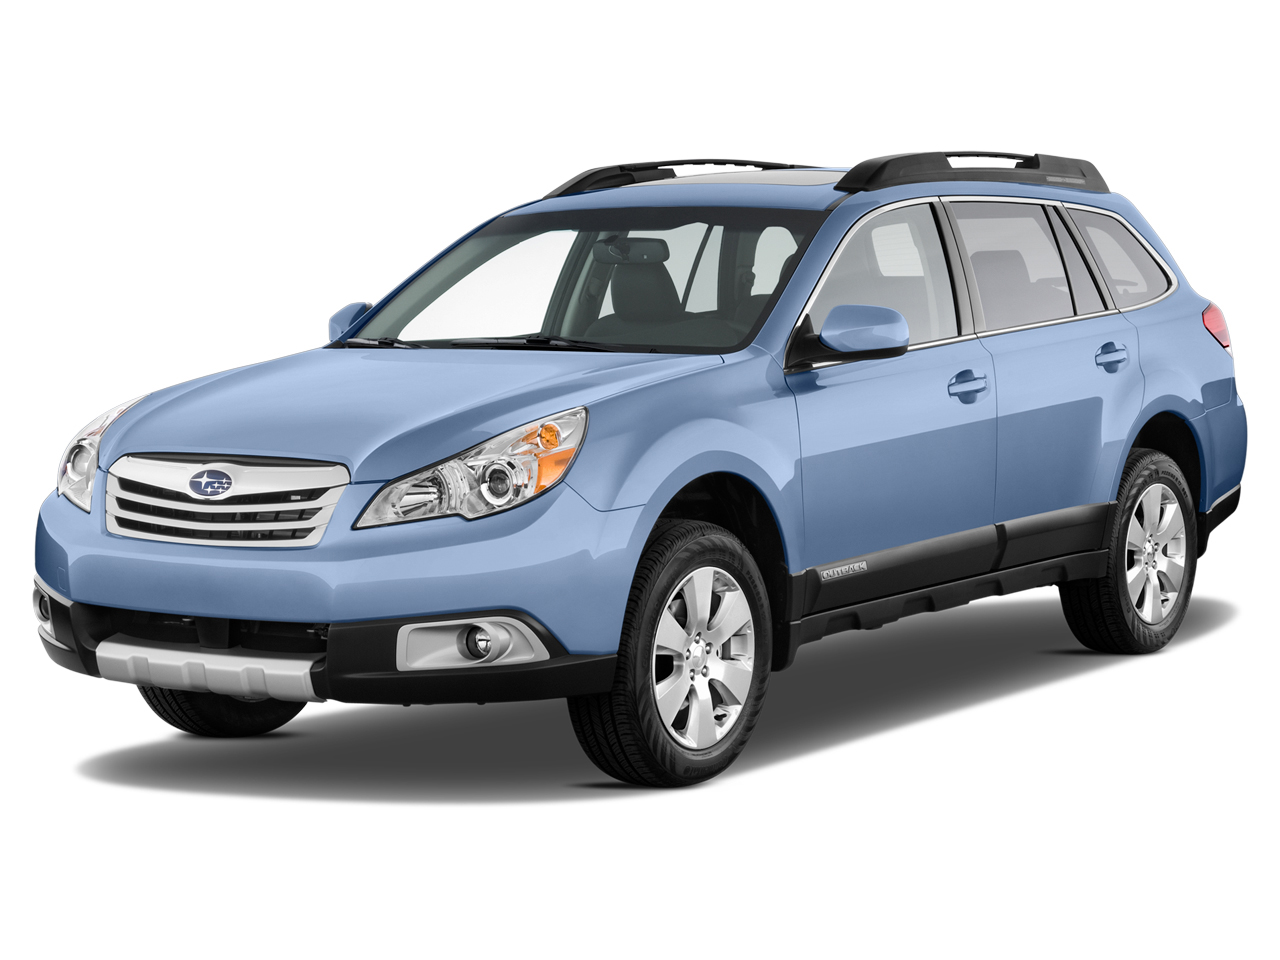 2012 Subaru Outback Review, Ratings, Specs, Prices, and ...